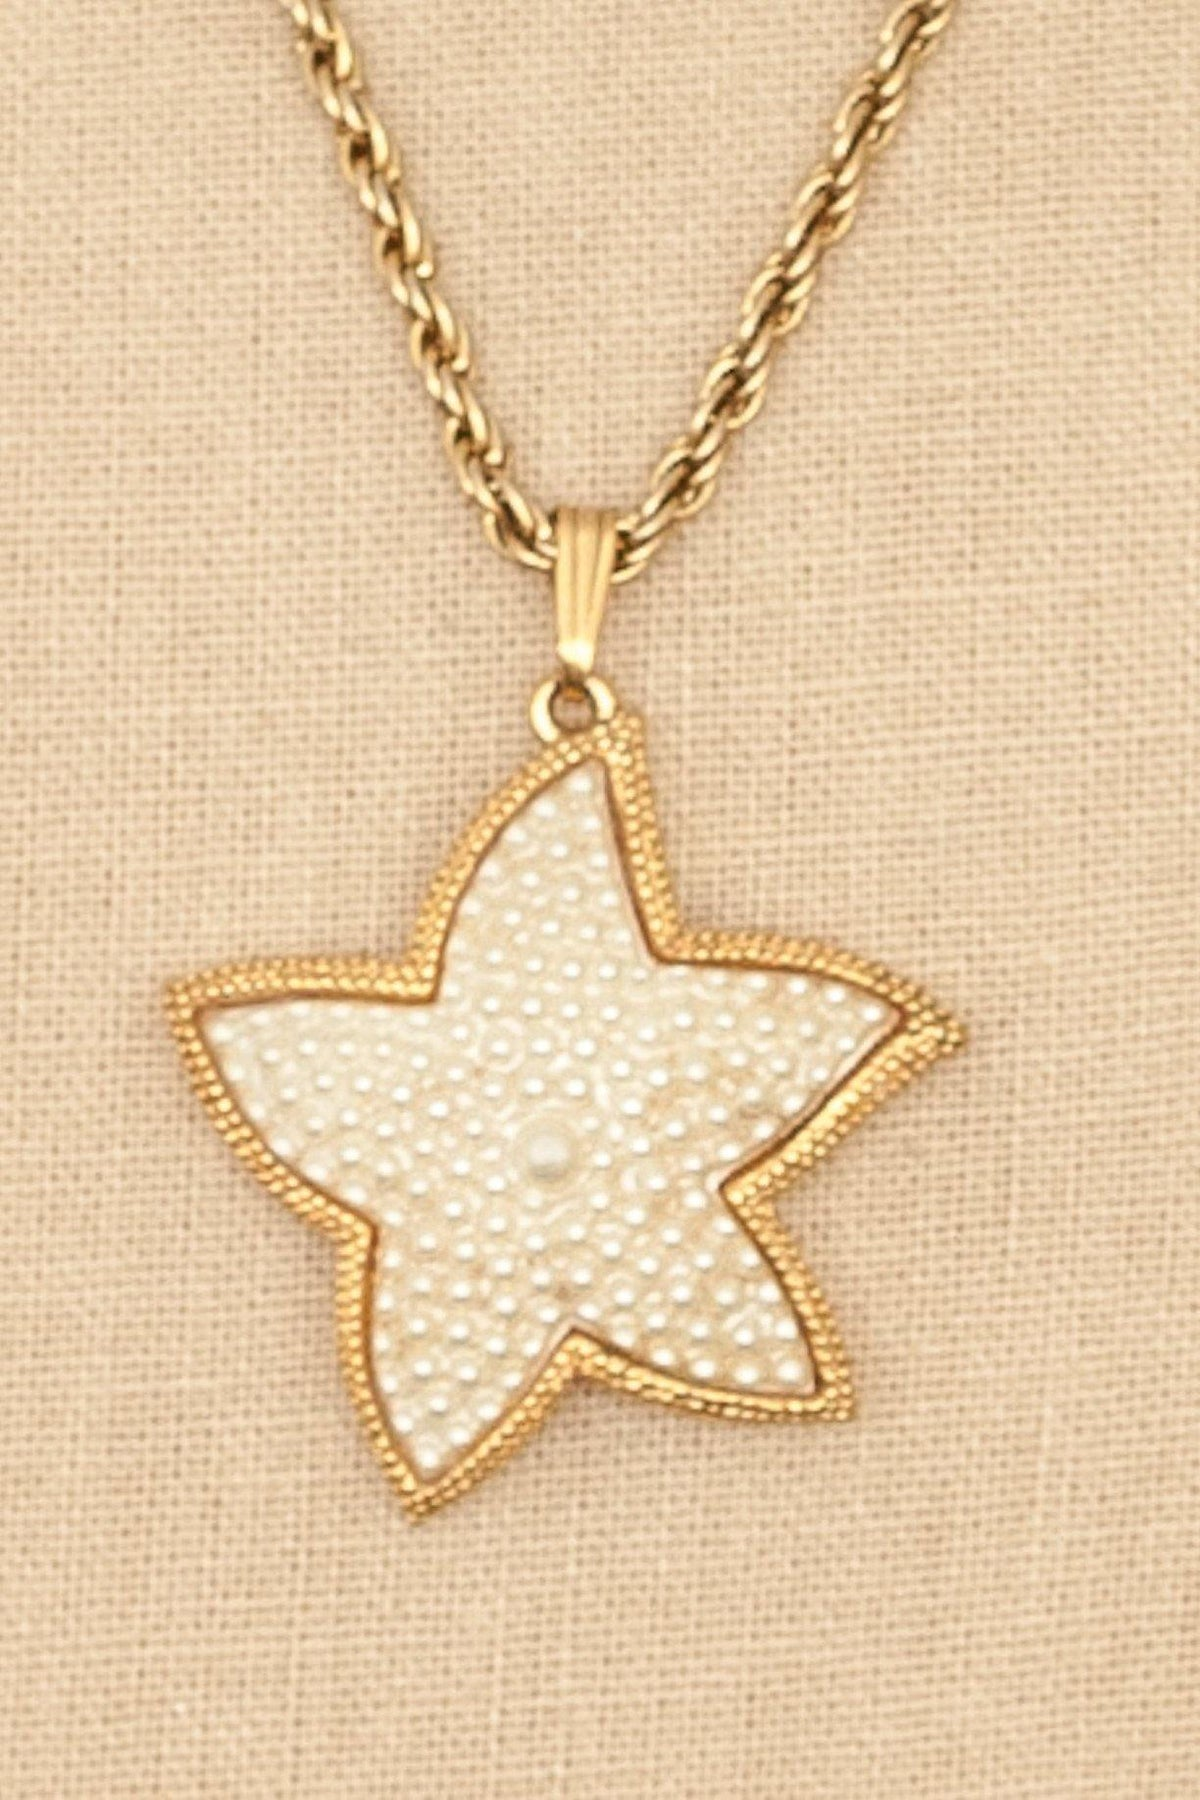 80's Vintage Pearl Star Pendant Necklace